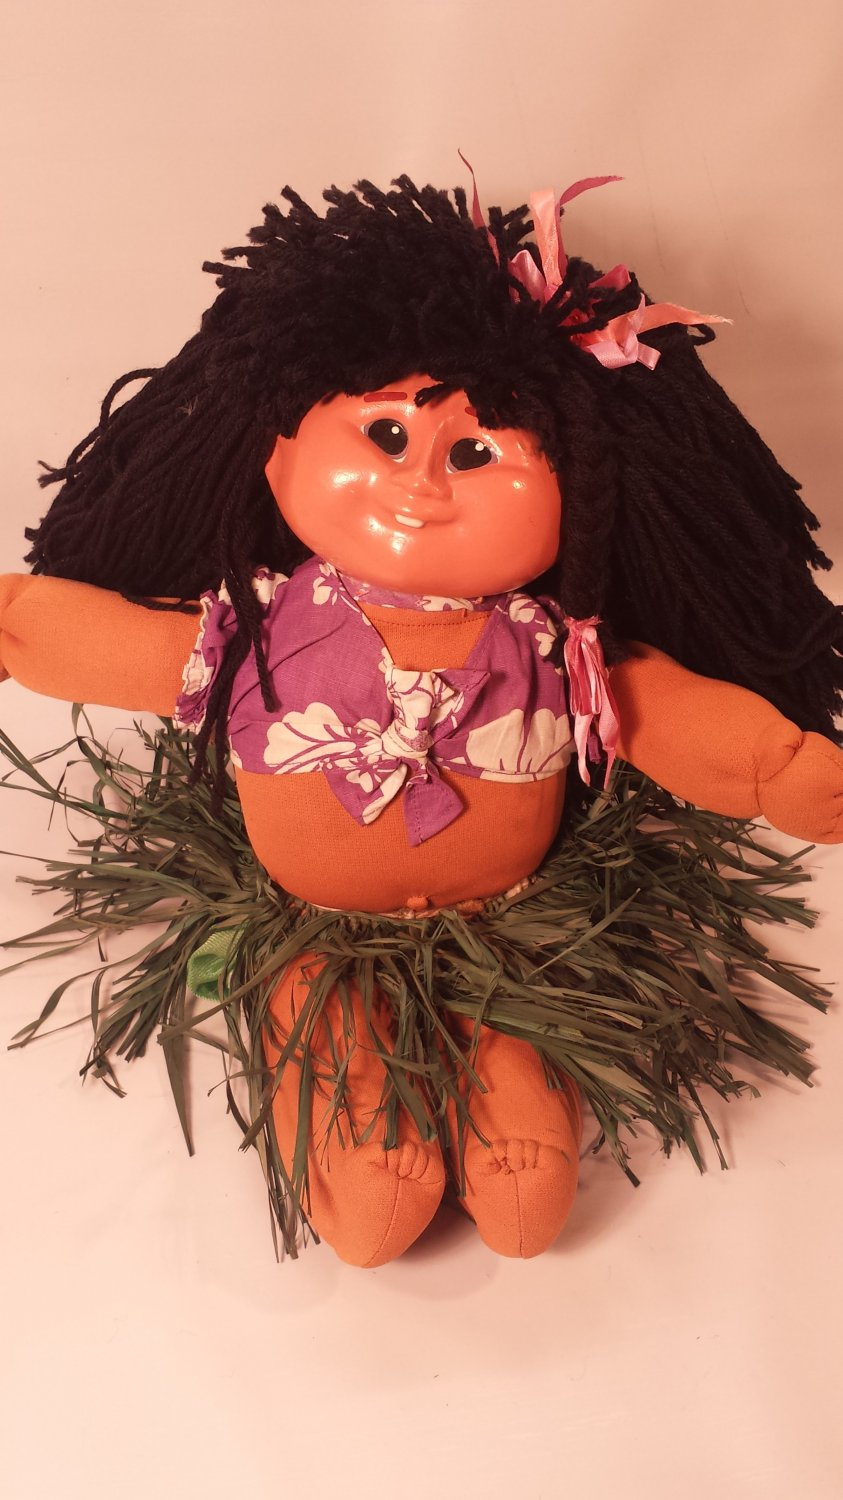 Vintage 1984 Taro Patch Dolls Hawaiian Doll Signed Don Smith Cabbage Patch